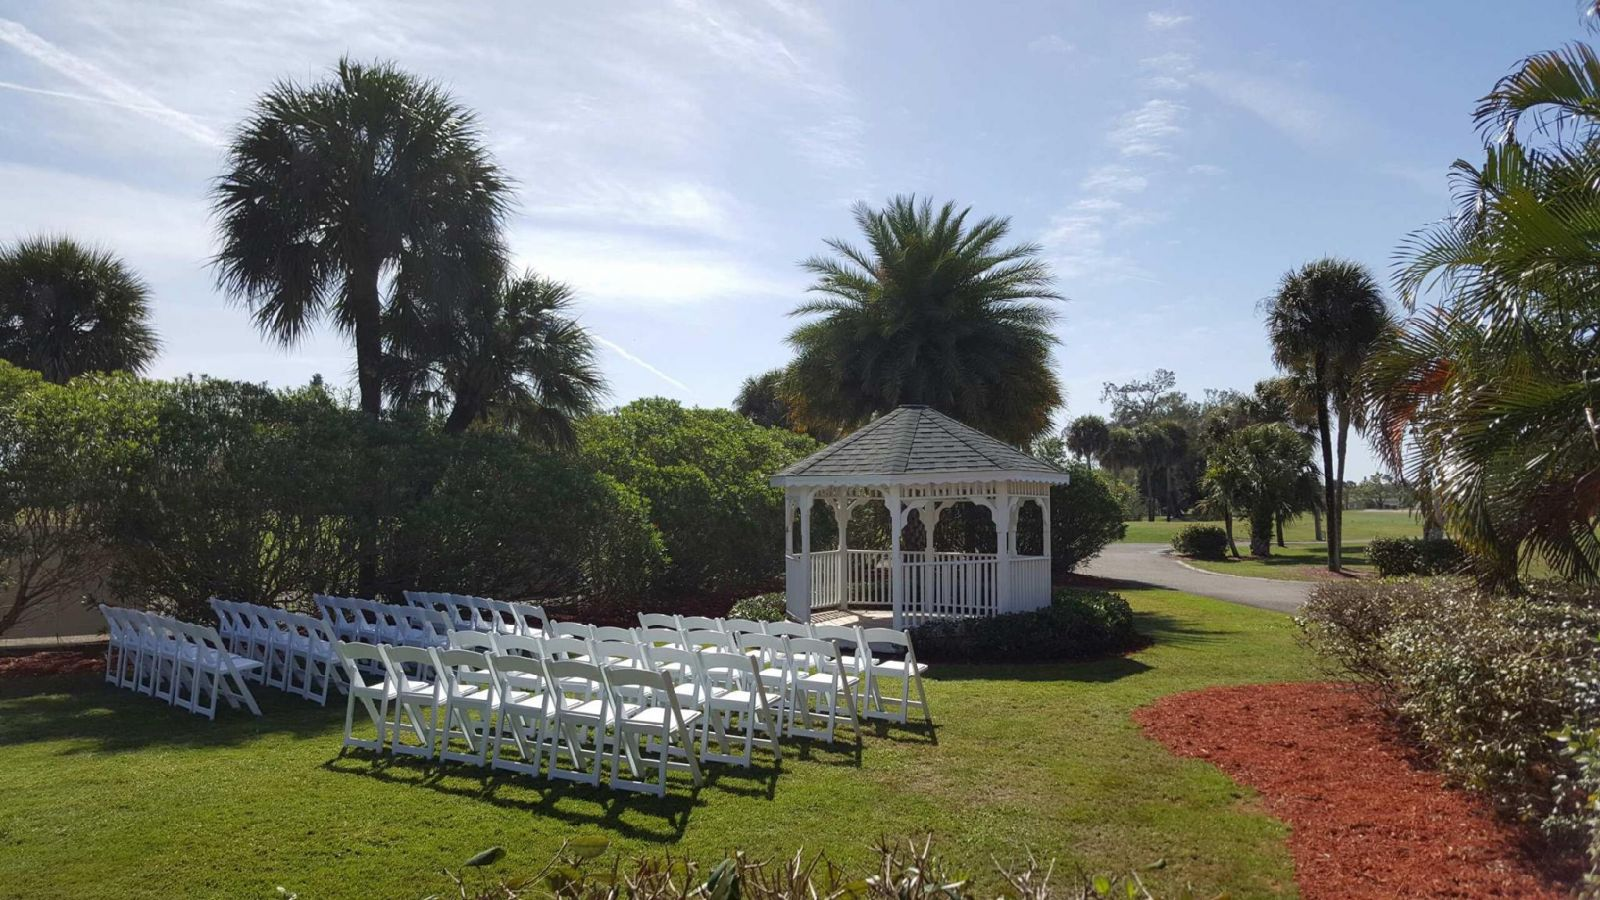 View of guests seating area and gazebo